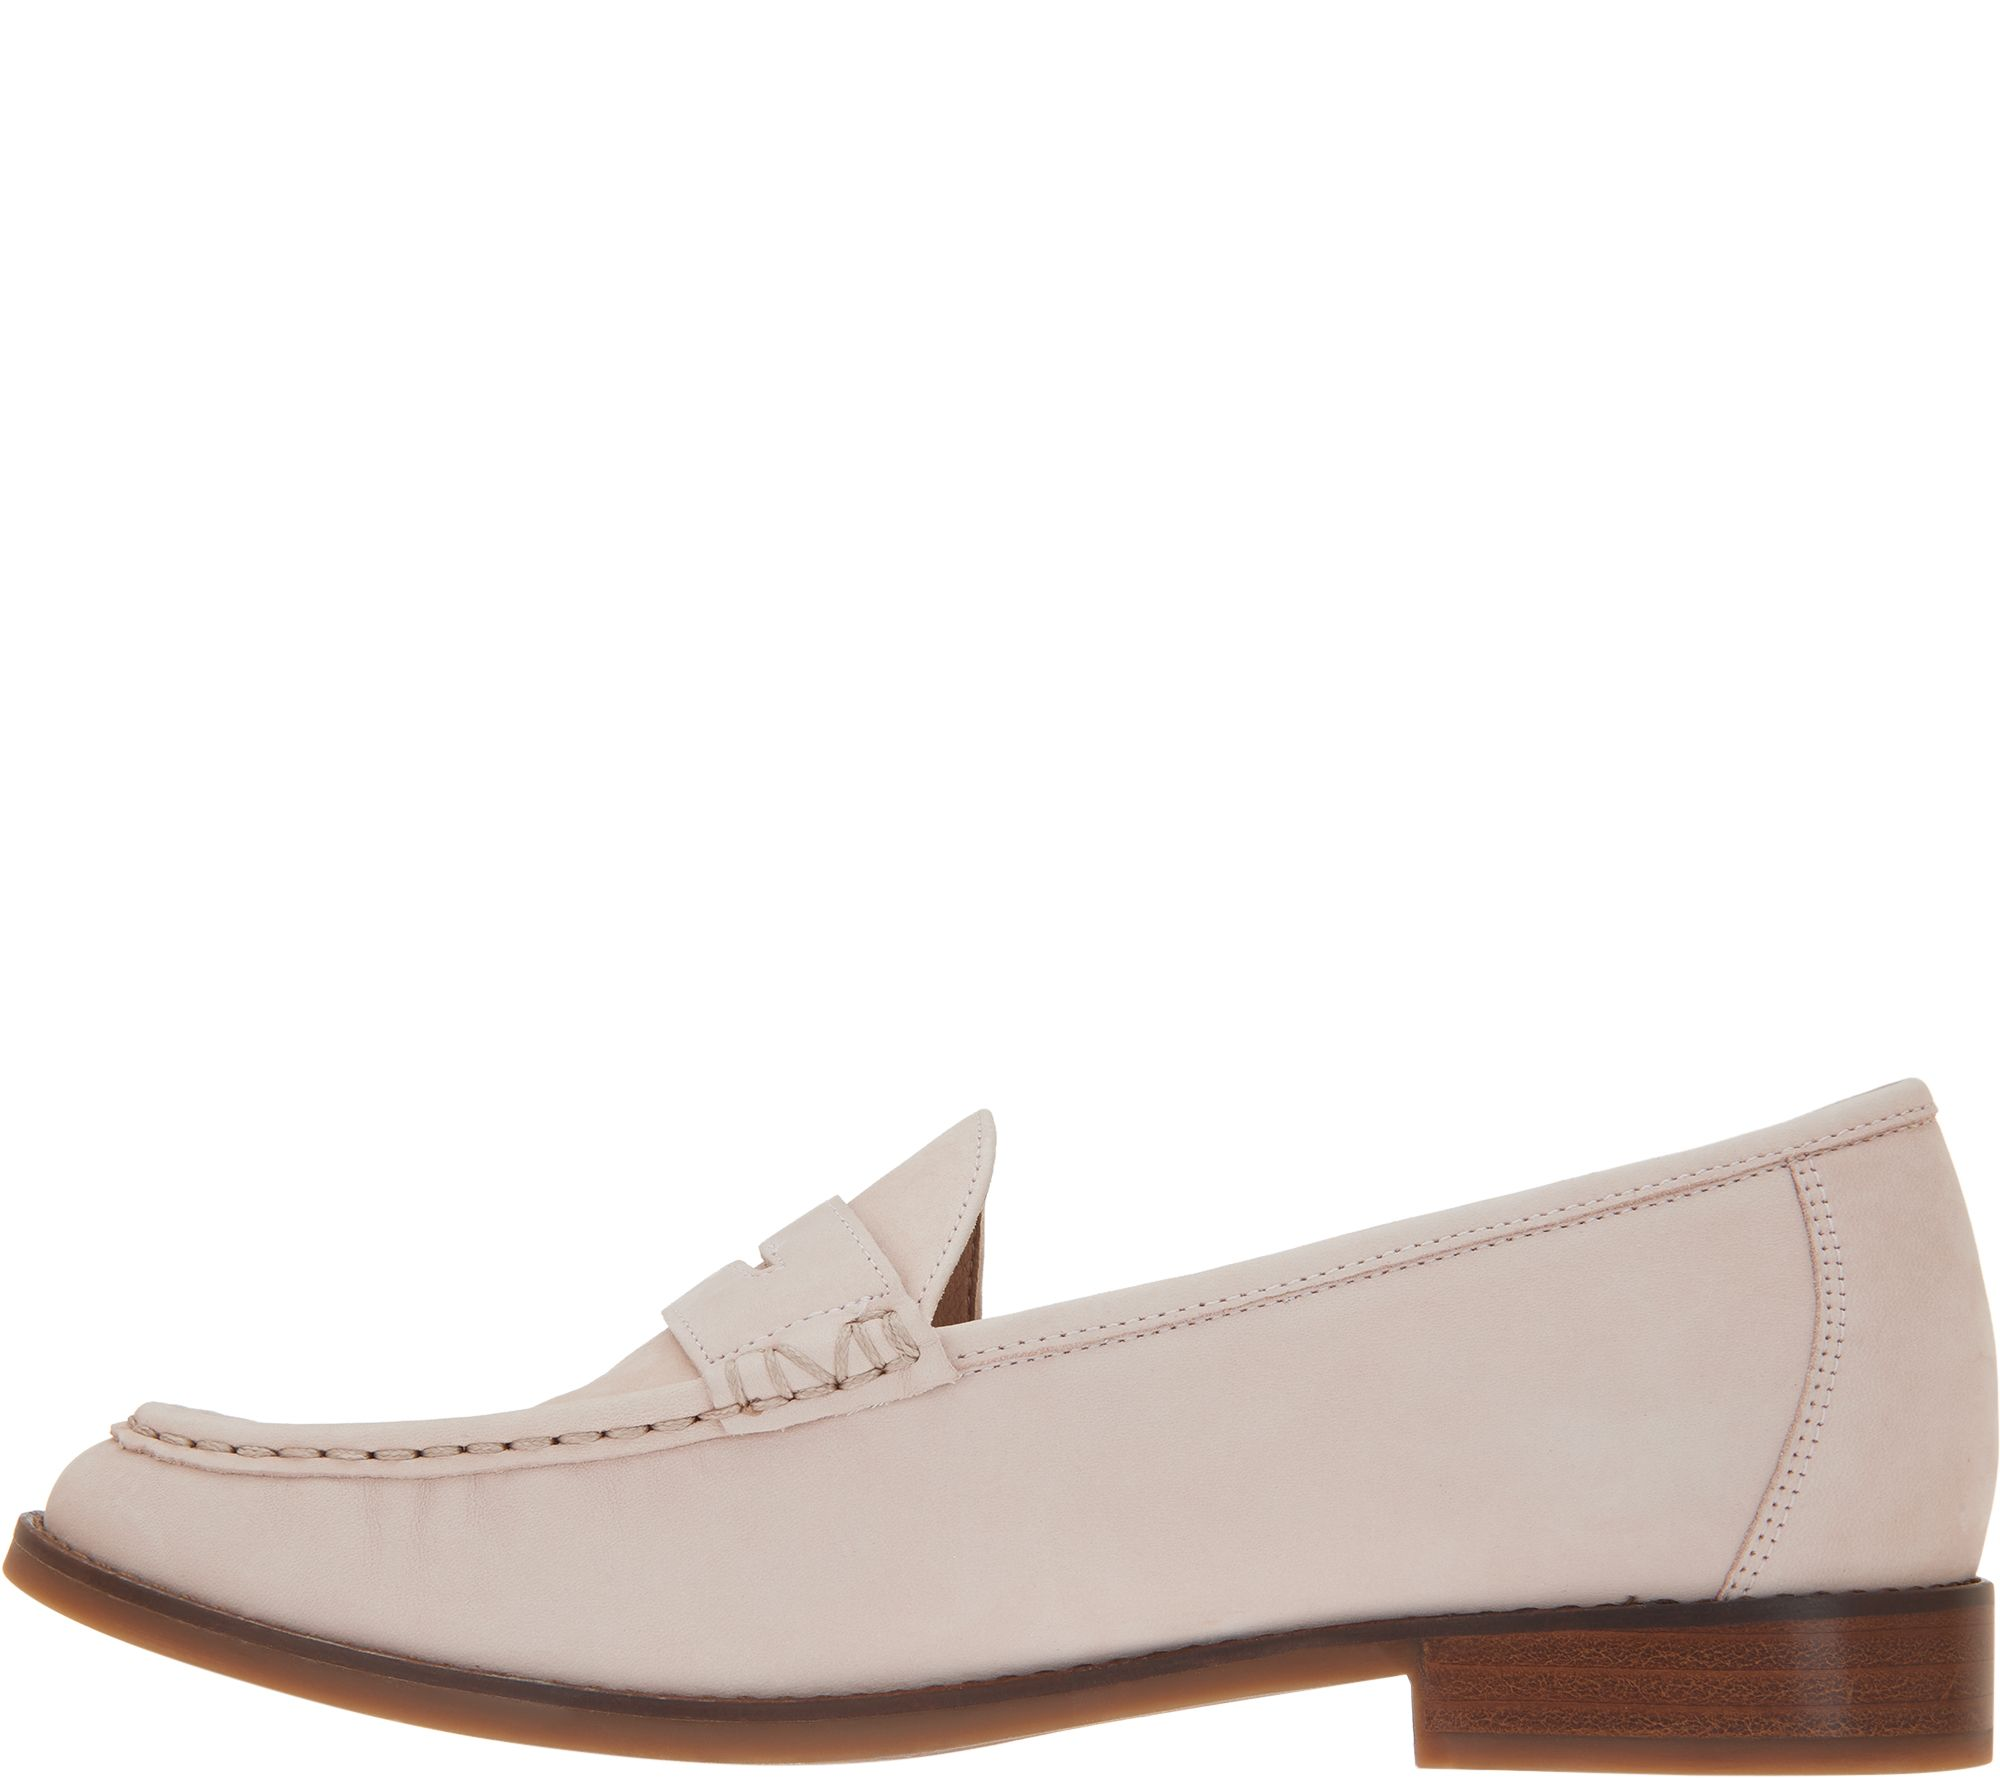 9c23dc29f26 Vionic Leather Loafers - Waverly - Page 1 — QVC.com